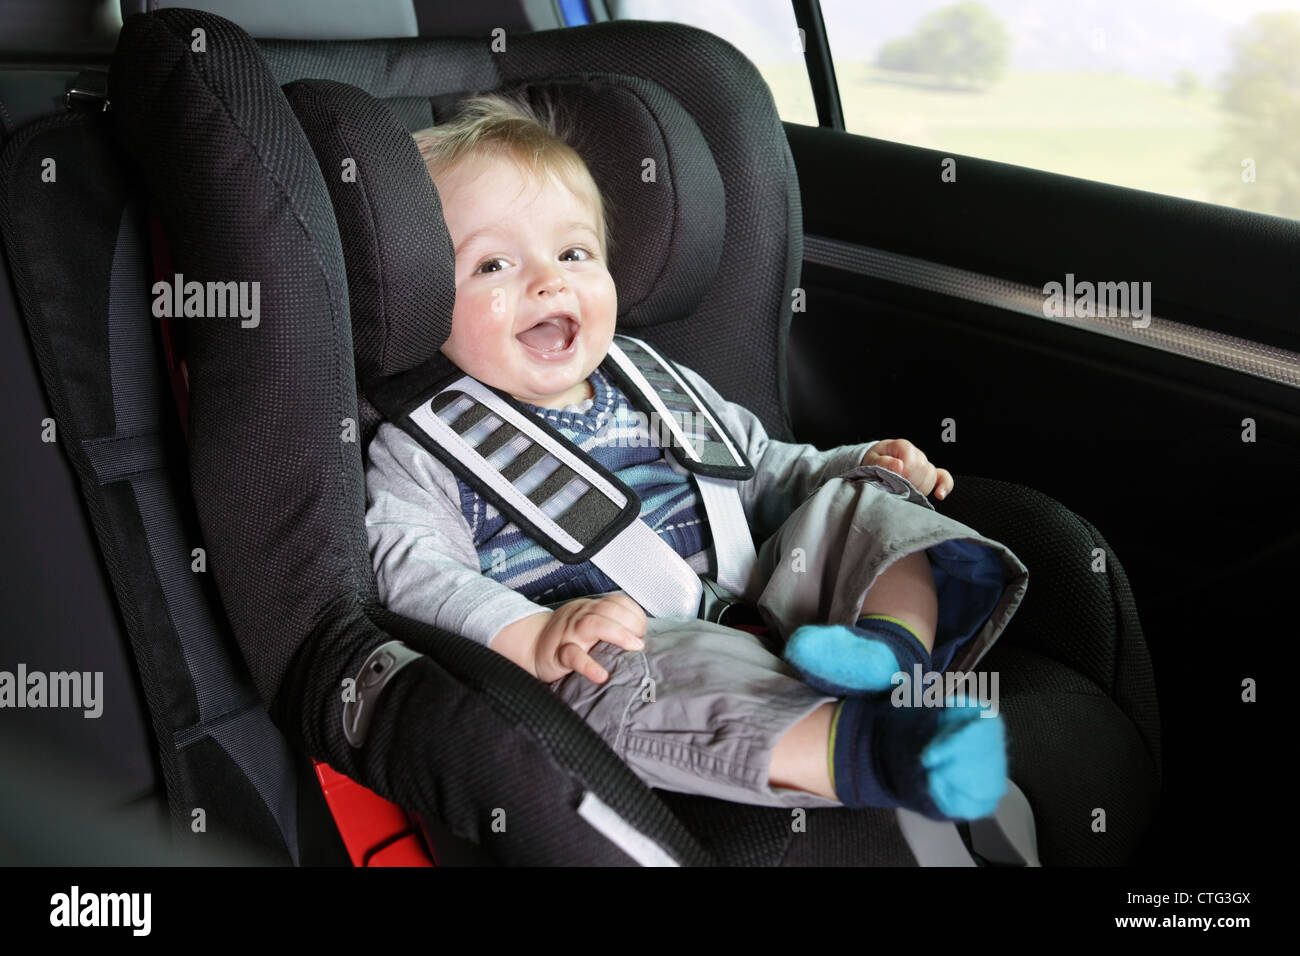 Baby boy in a child safety car seat - Stock Image